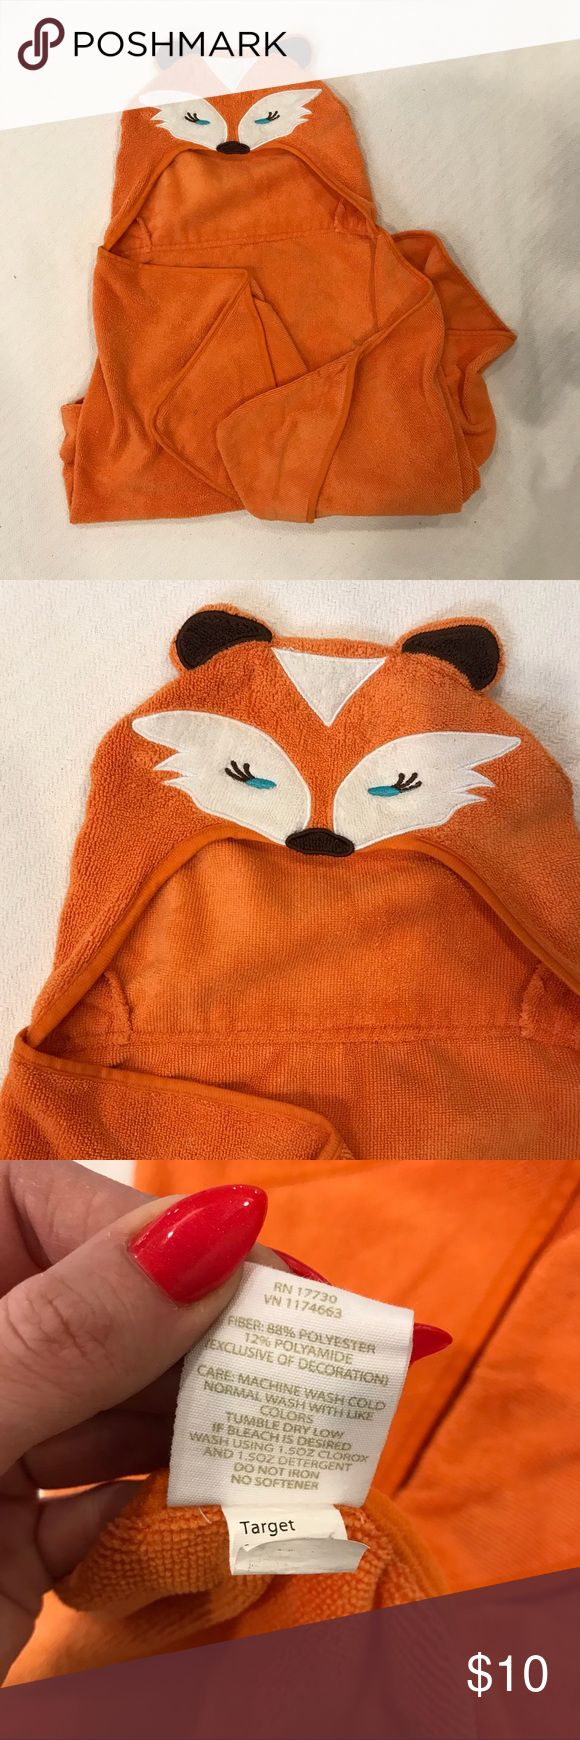 Circo Fox Hooded Towel Gently used towel in great condition. Super cute with Fox ears, eyes, tail and all.  Good to know ‼️ 📌Smoke and pet free home  📌Suggested user, 5 star seller & fast shipper  📌Let me know if you have any questions.  📌Check out my other listings and use sorting tool to find the size or the right category  📌Offers are welcome  ❌Trades  ❌Low ball offers   Thank you for stopping by! ❤️ Other